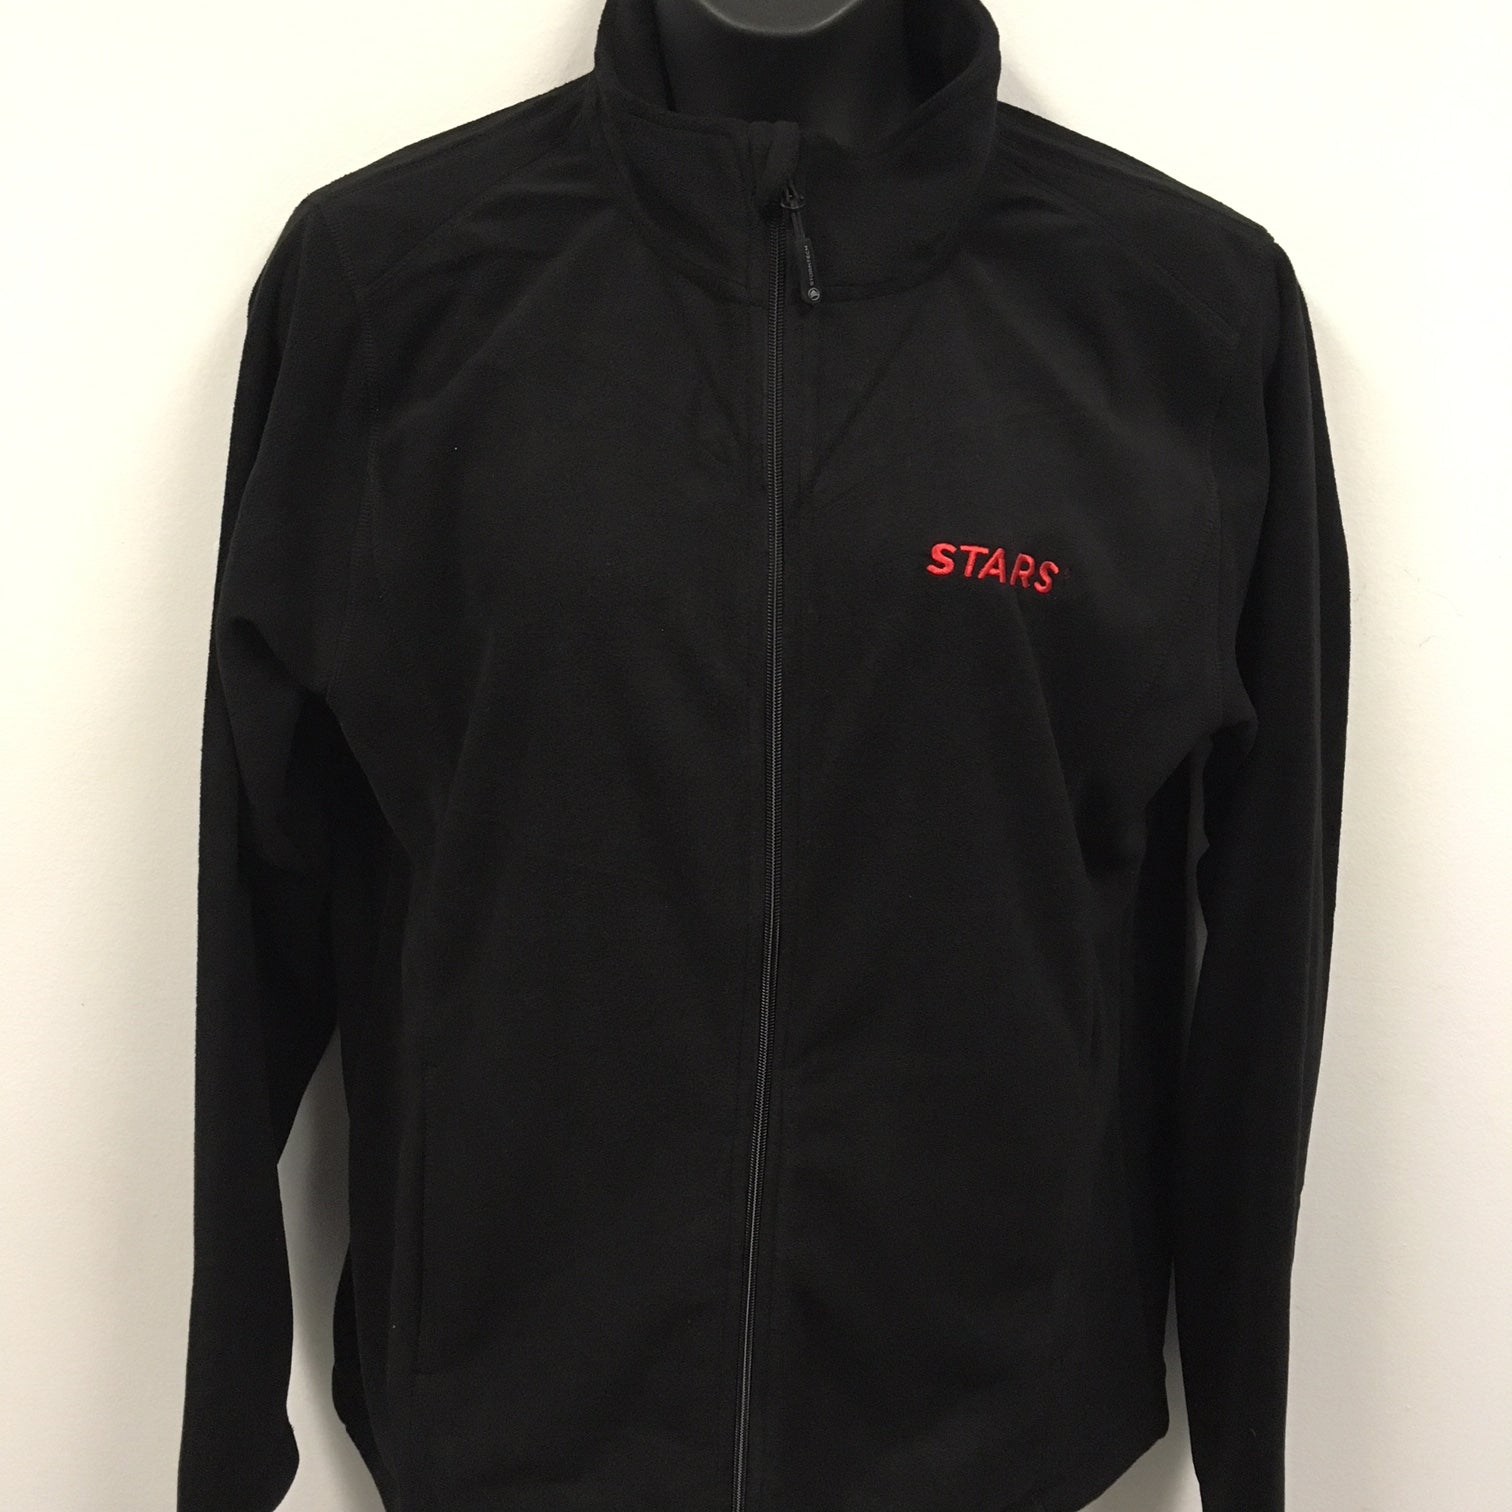 Tools Jacket - Black